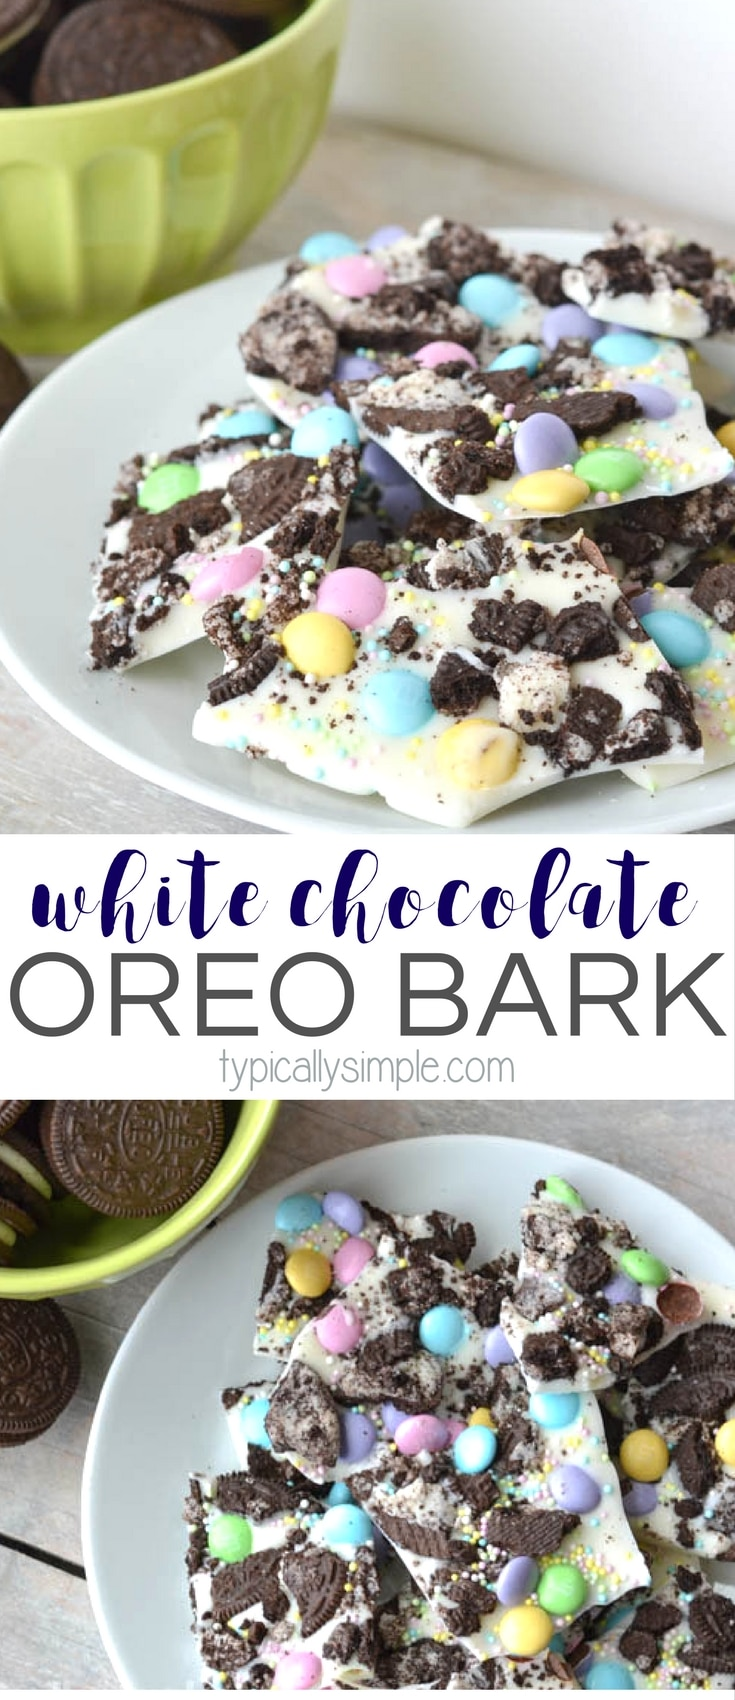 Packed full of pastel colored M&M's, this white chocolate Oreo bark recipe is super simple to make! A perfectly delicious treat for Easter!